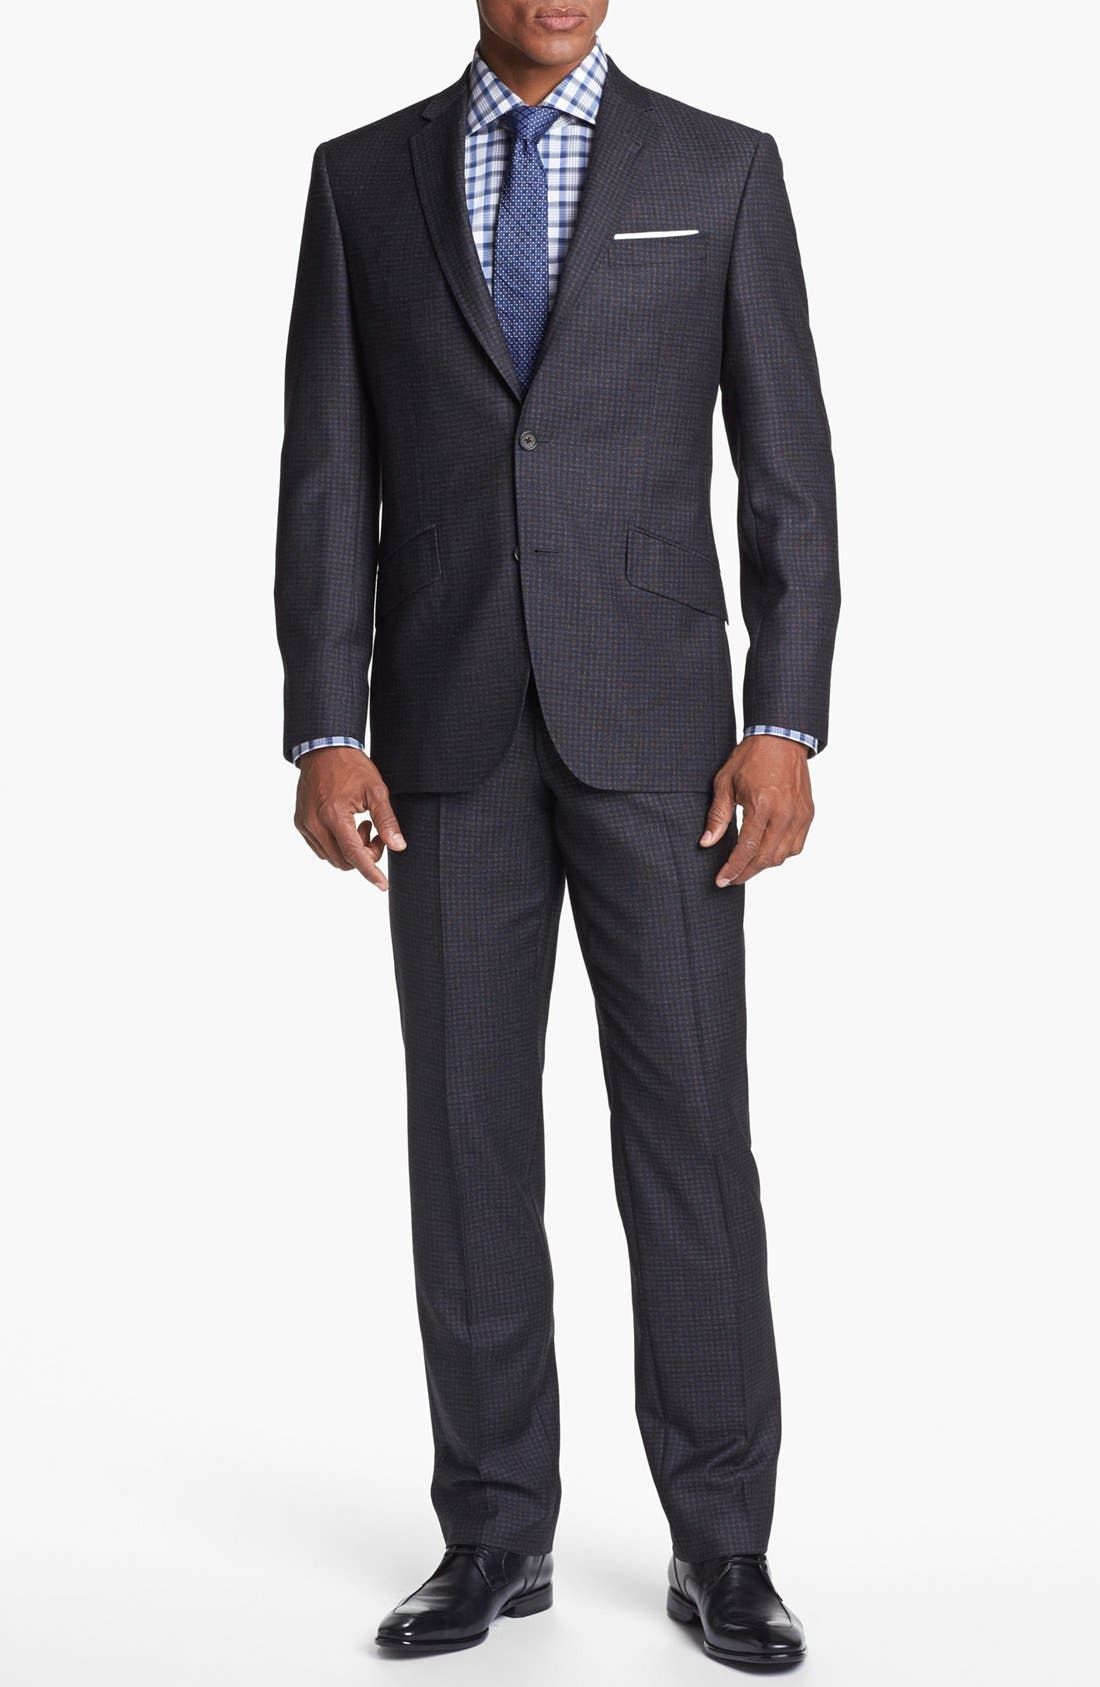 Alternate Image 1 Selected - Ted Baker London 'Jones' Trim Fit Check Suit (Online Only)